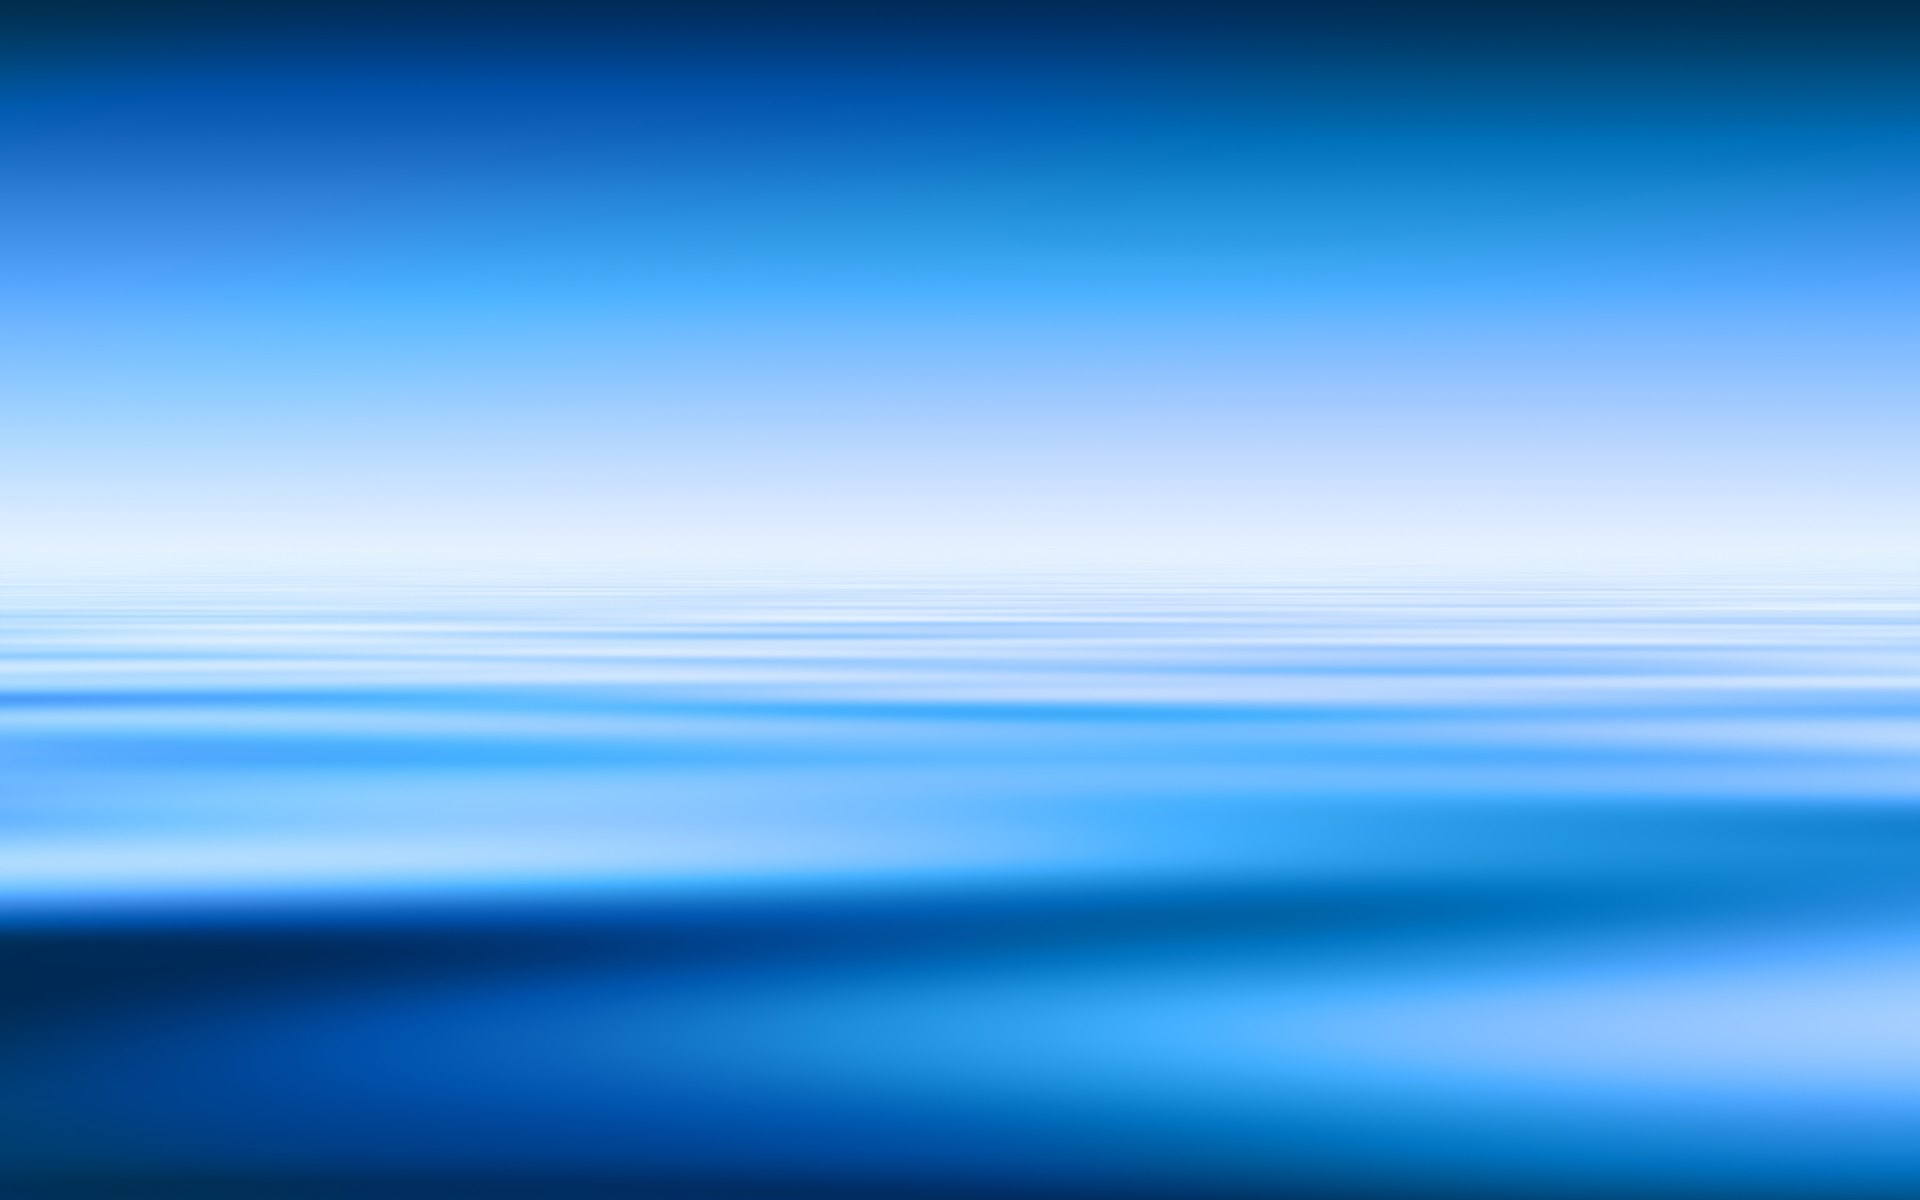 Abstract Blue 3907 Hd Wallpapers in Abstract   Imagescicom 1920x1200